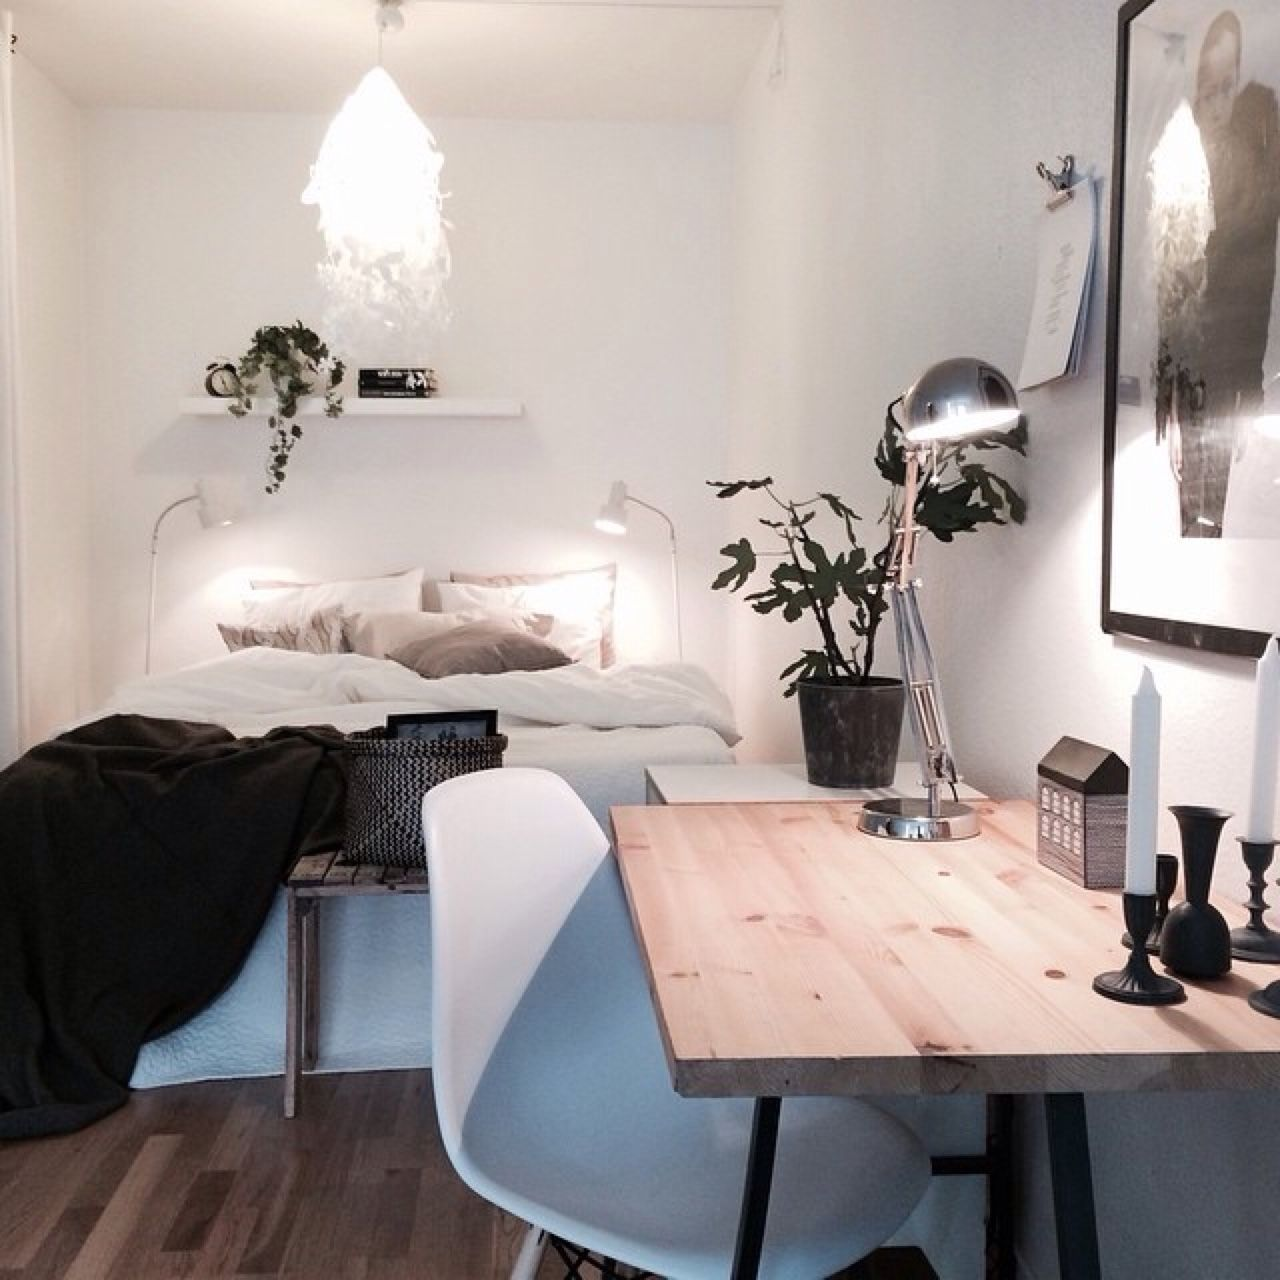 Apartment bedrooms tumblr - Find This Pin And More On New Bedroom App